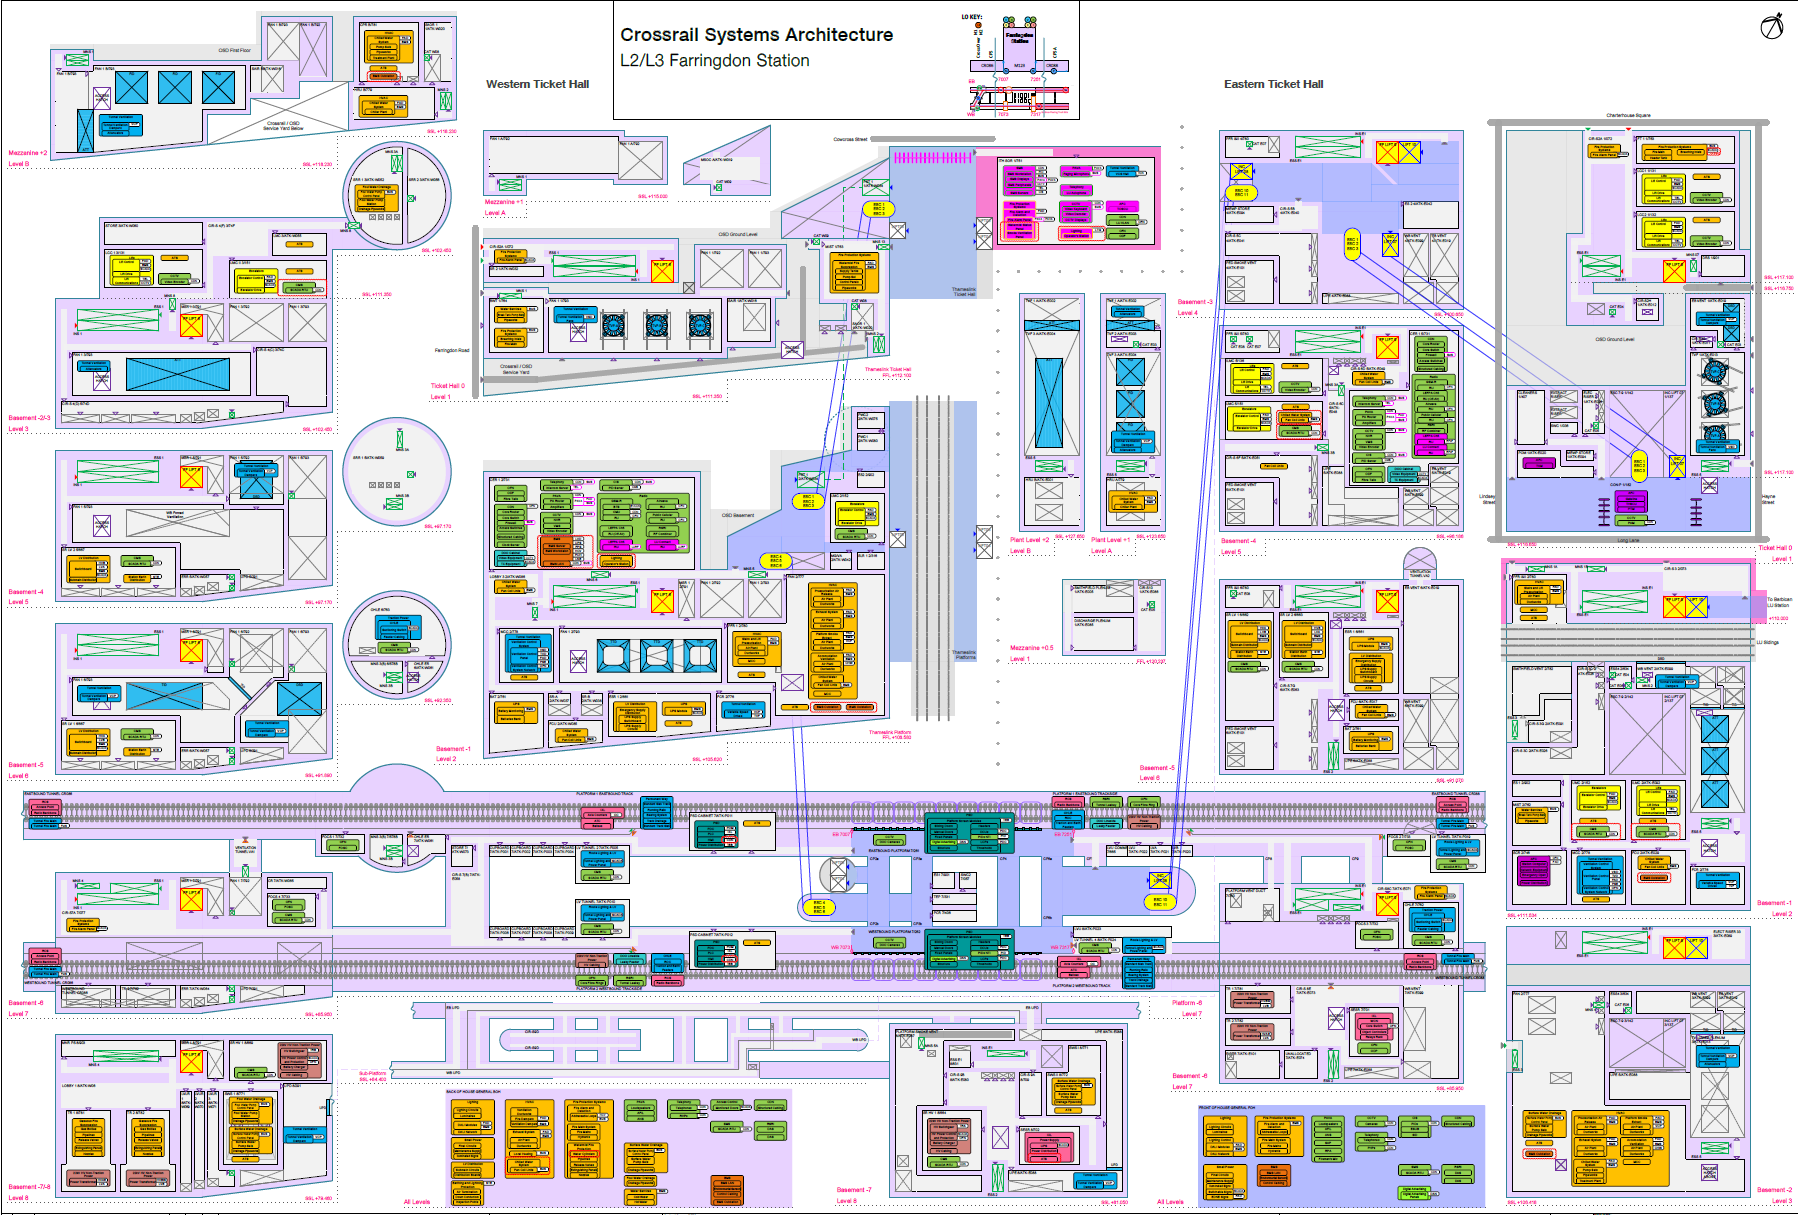 Systems Architecture Models In Crossrail Design And